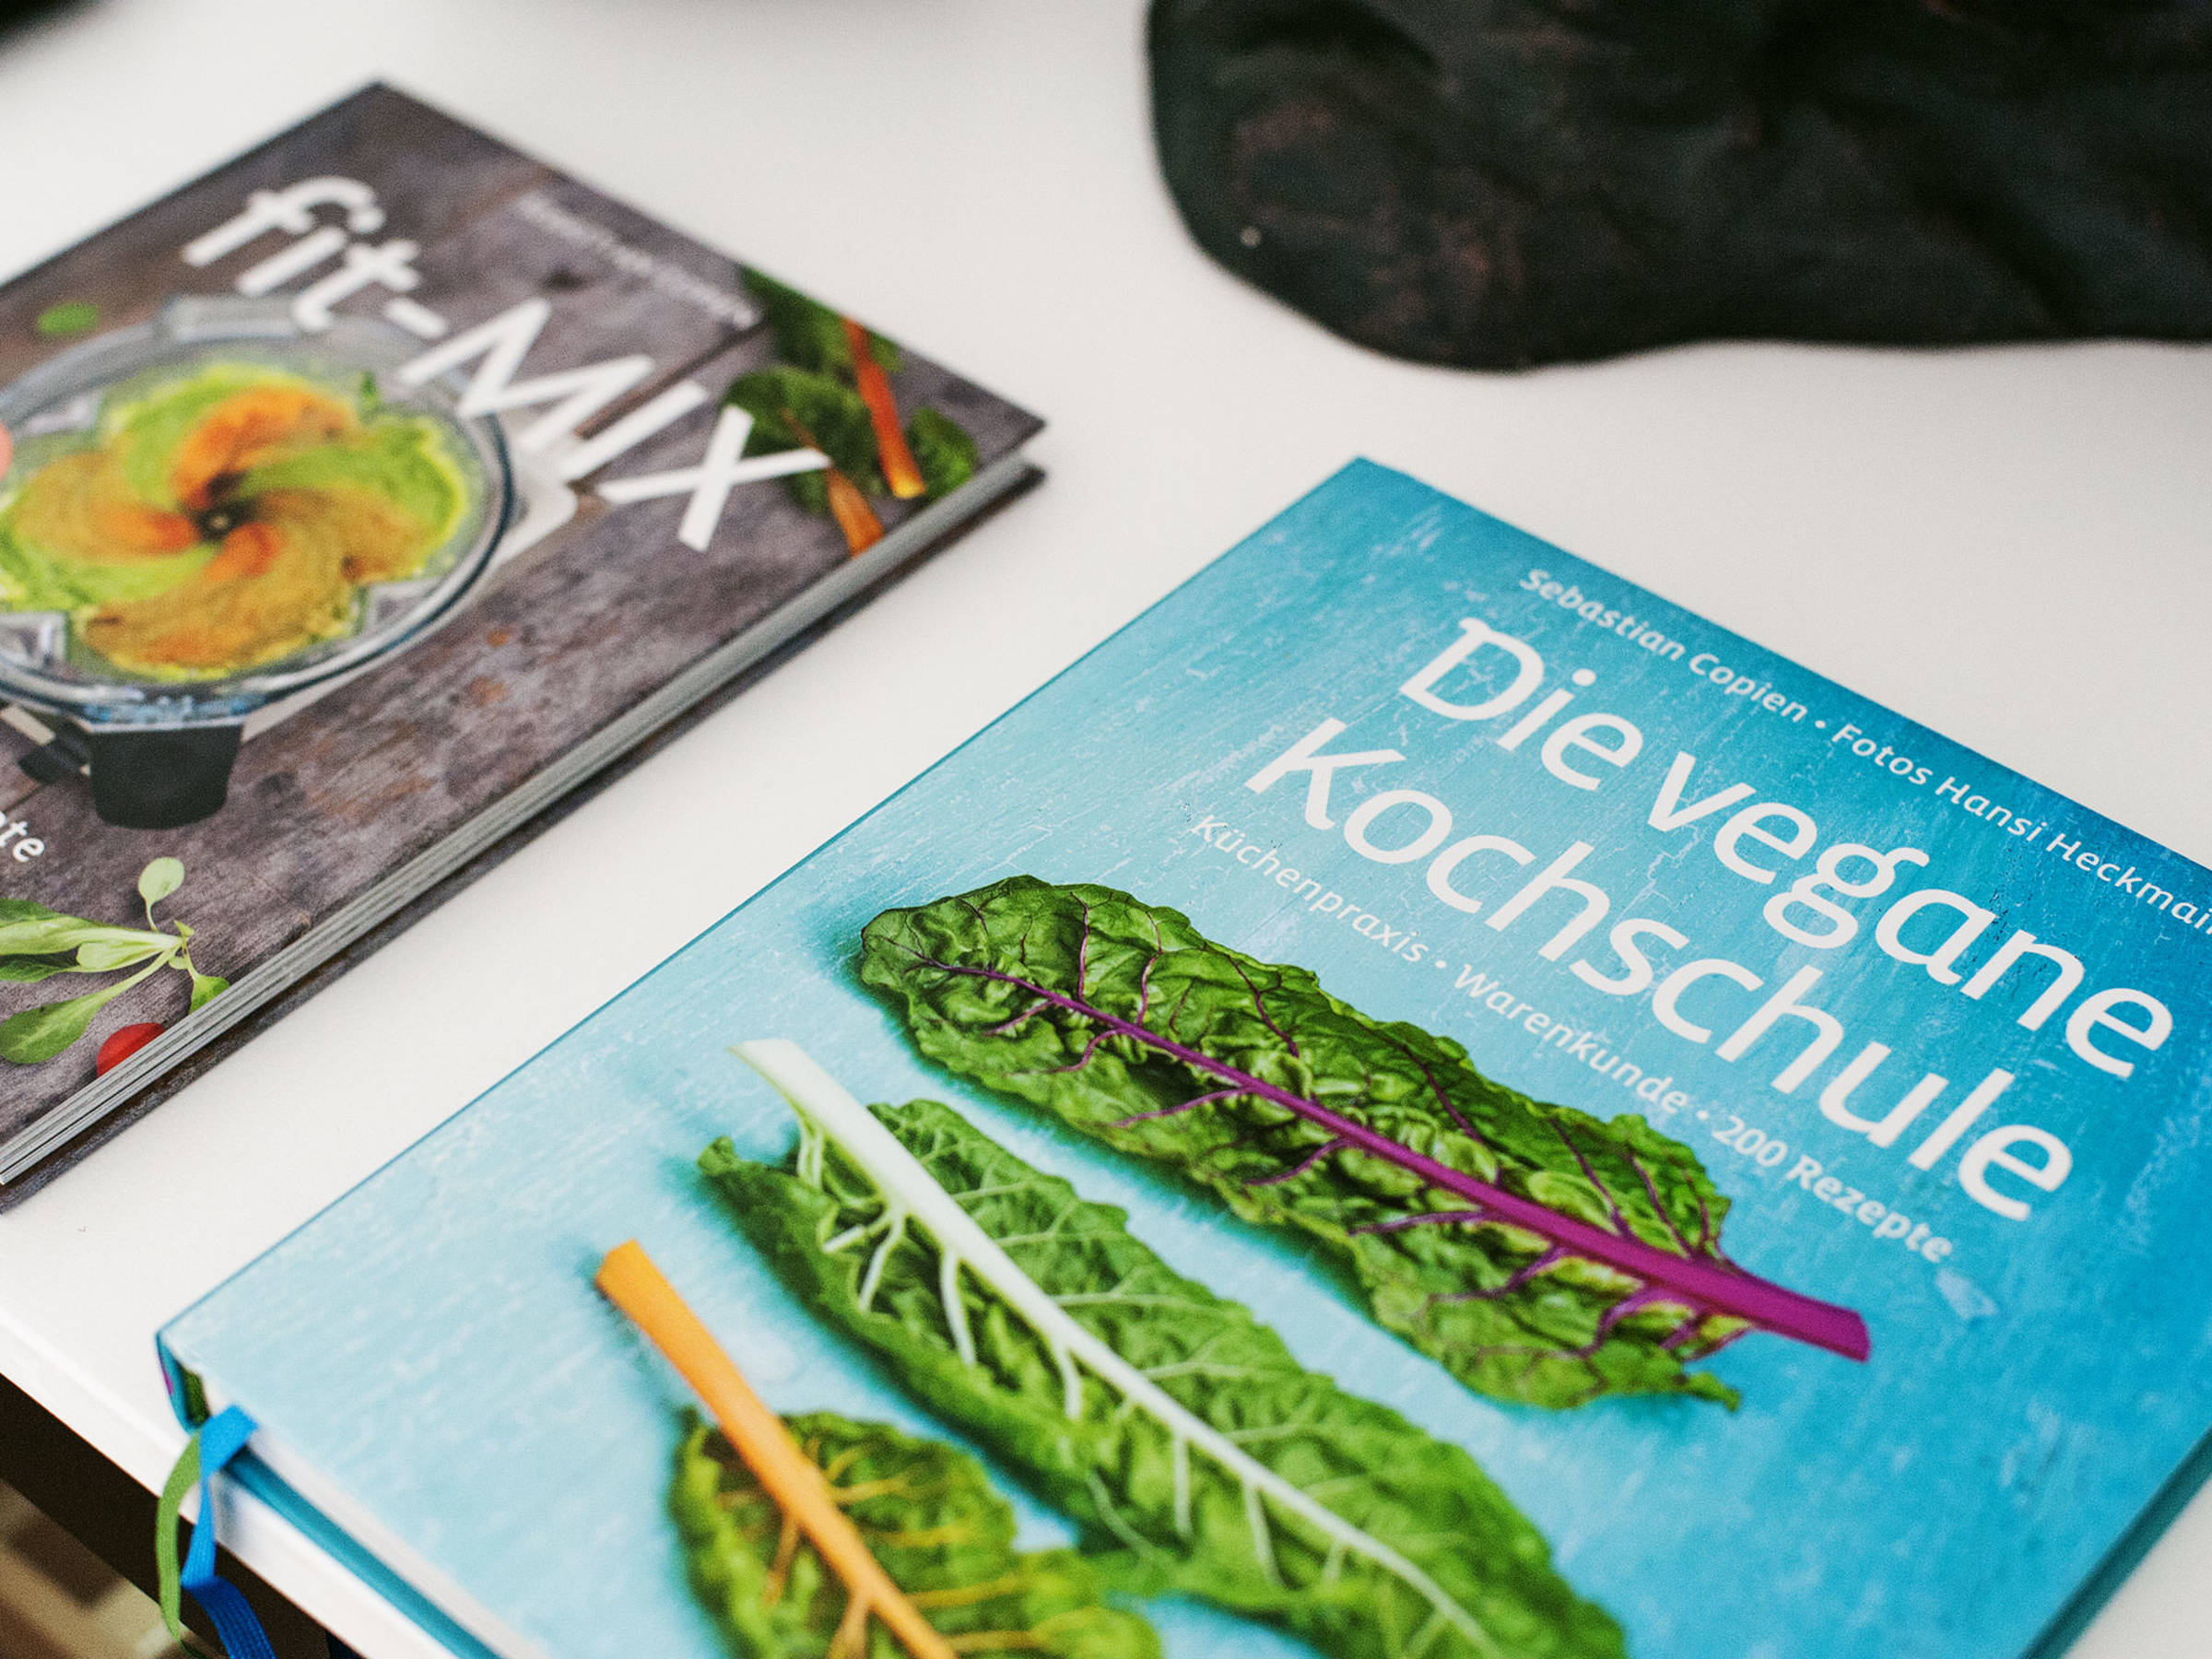 """If you want to find other delicious and healthy blender recipes, then check out Sebastian's book """"Fit-Mix""""(ZS Verlag) where you'll find many other tasty breakfast smoothie ideas for every day and season.  Find the whole recipe in the video!"""